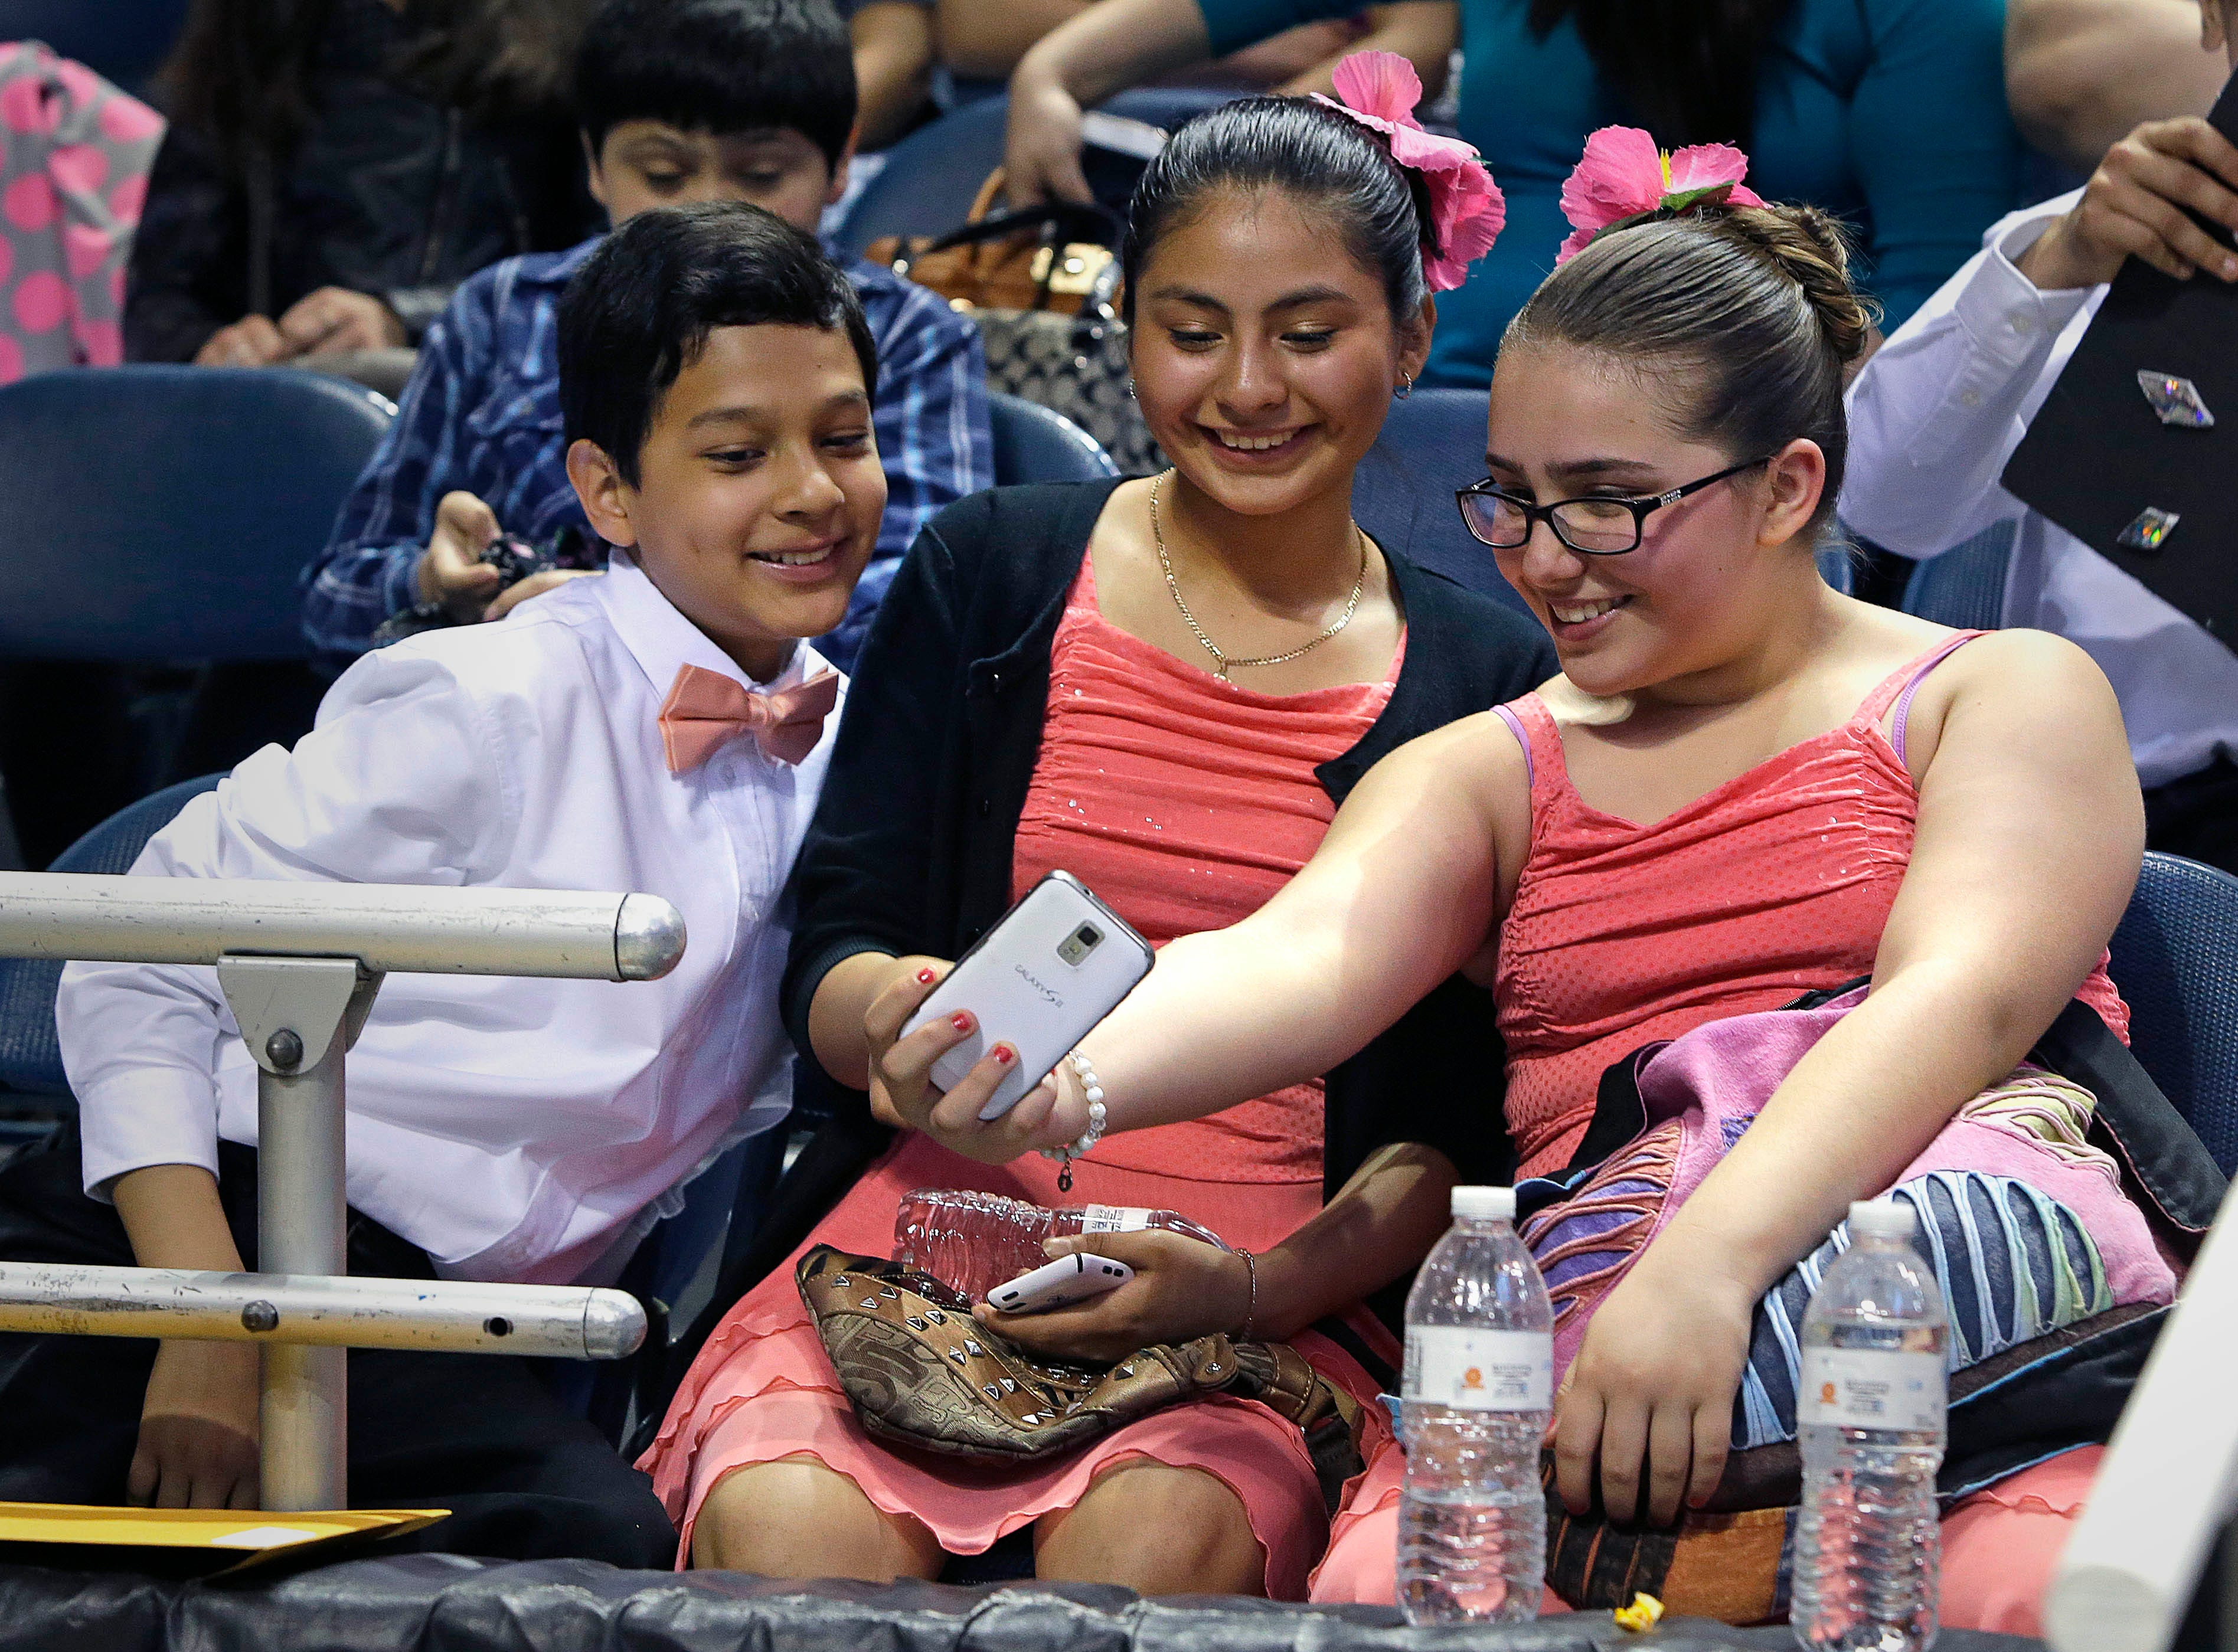 2015: Students from Vieau Elementary School watch a video of their performance during the annual Mad Hot Ballroom and Tap competition at the Bradley Center.